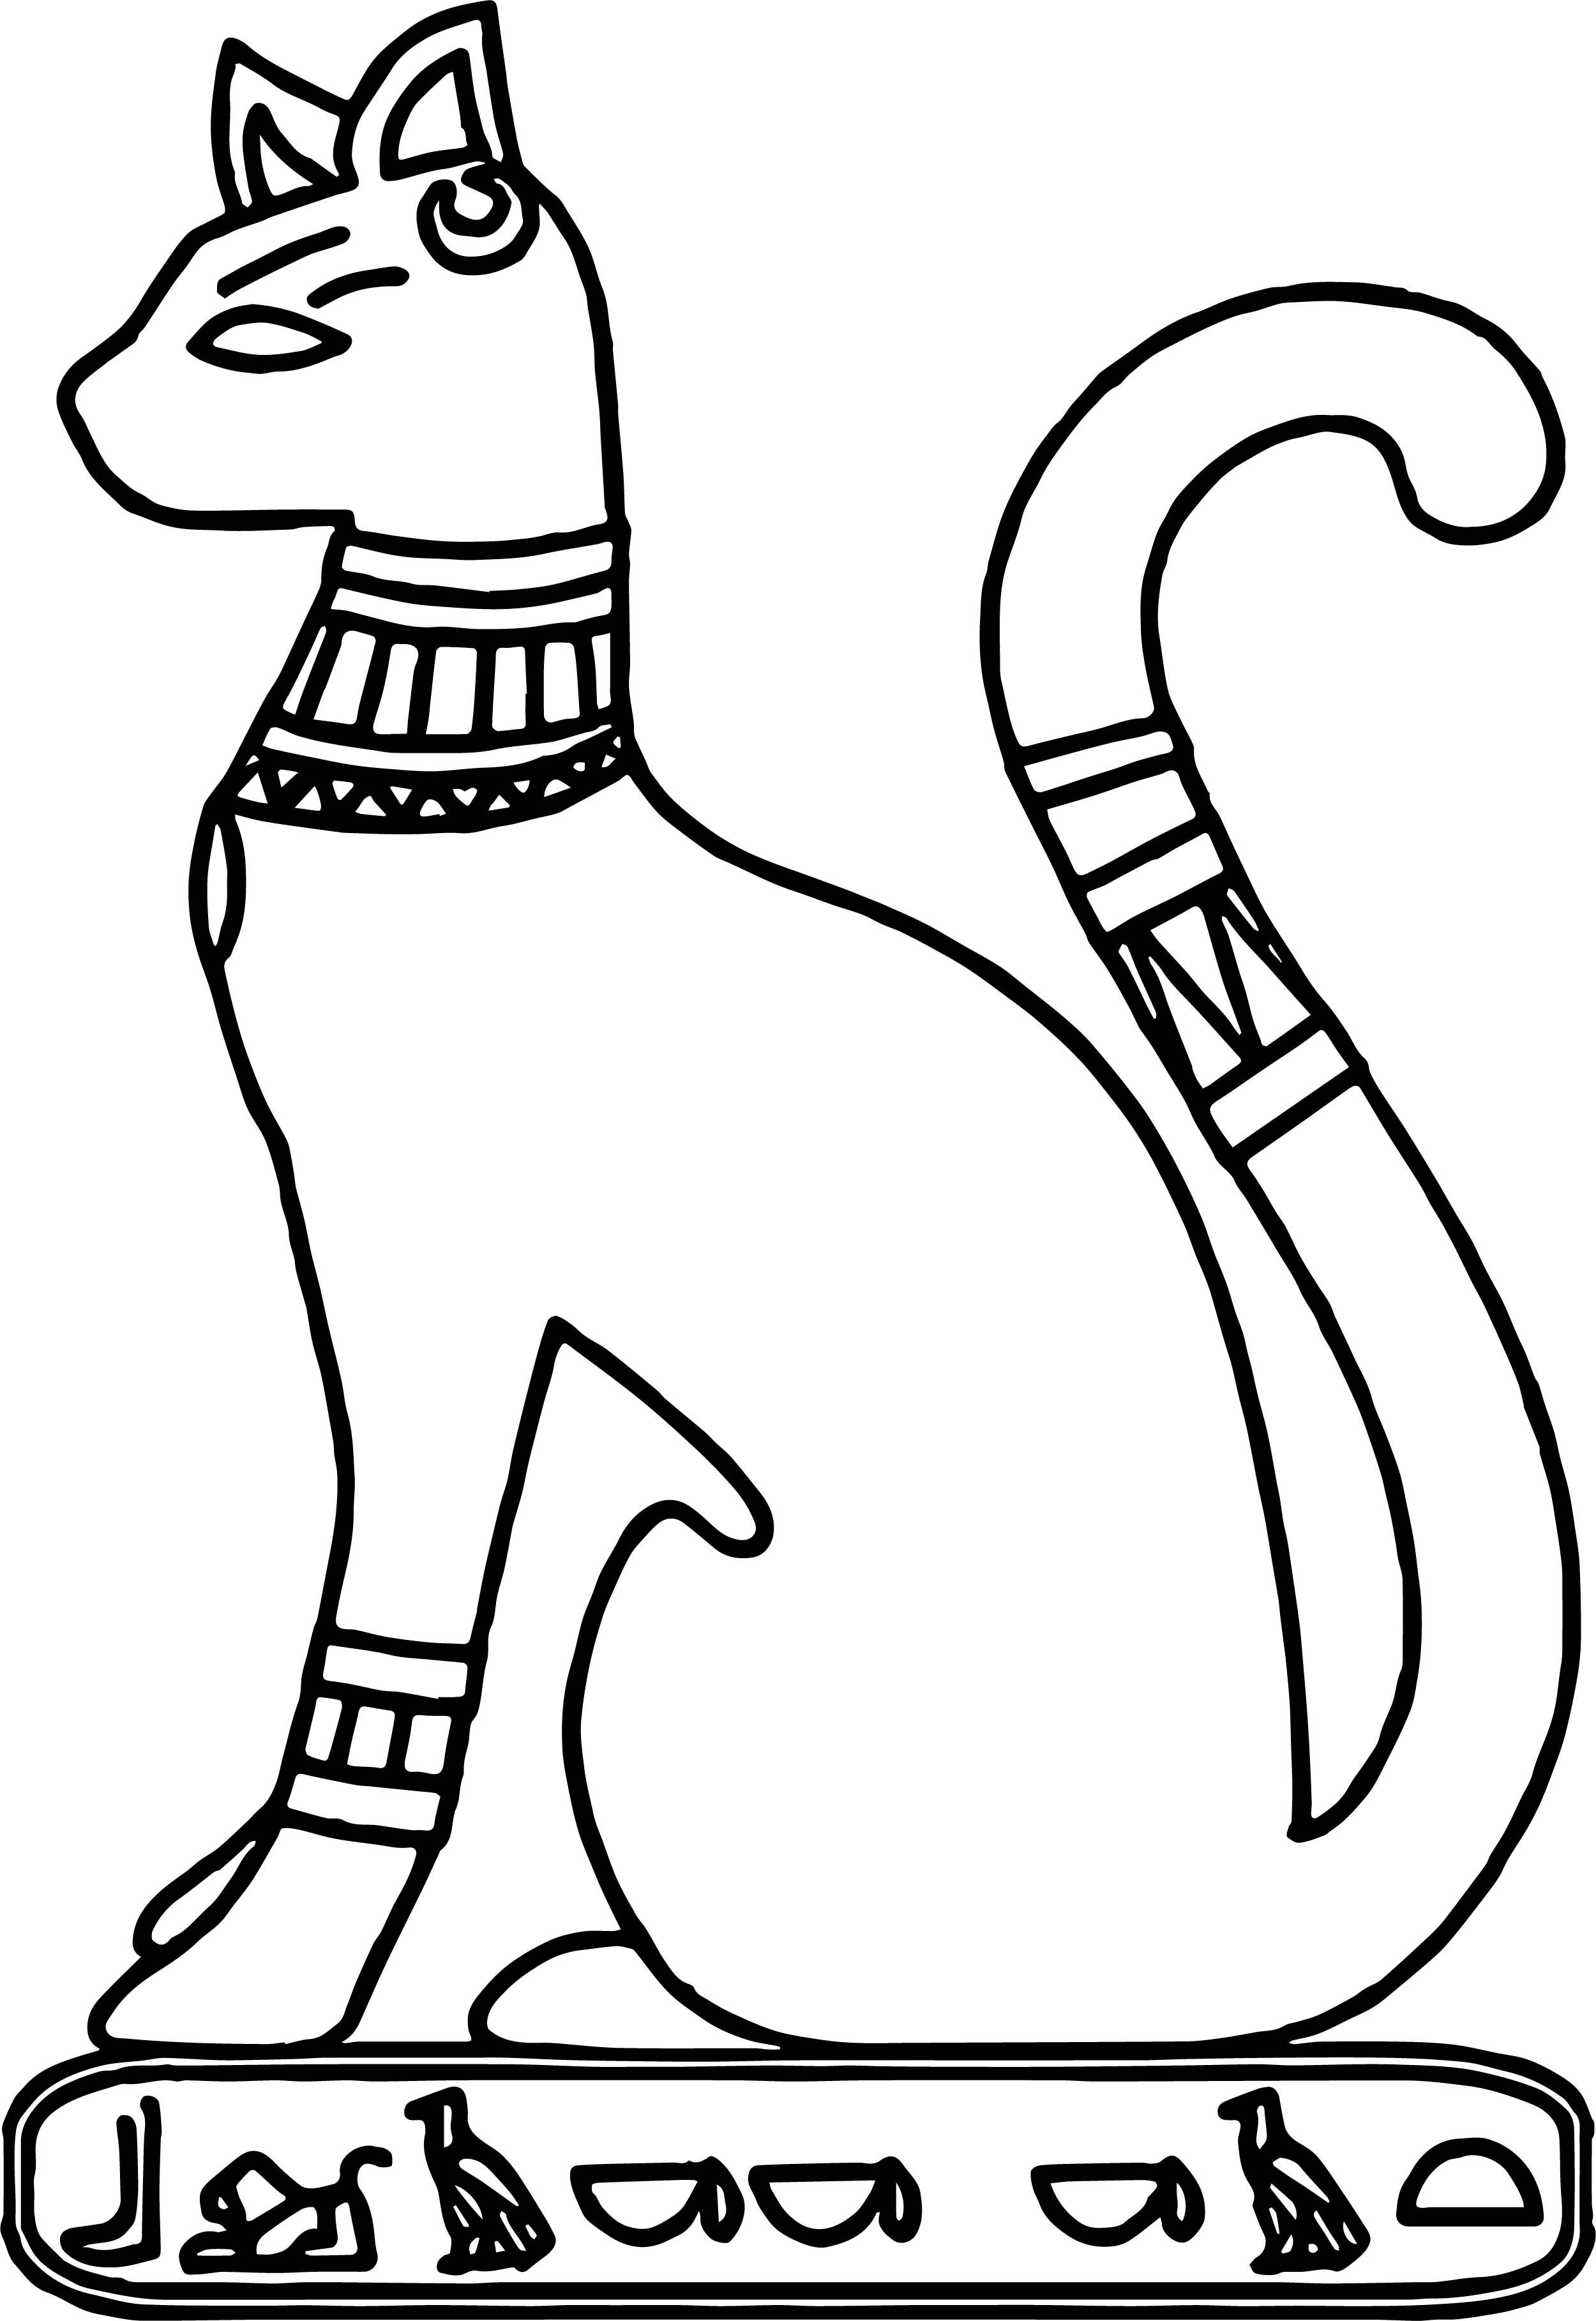 Ancient Egypt Cat Coloring Page | Egypt cat, Ancient egypt and ...